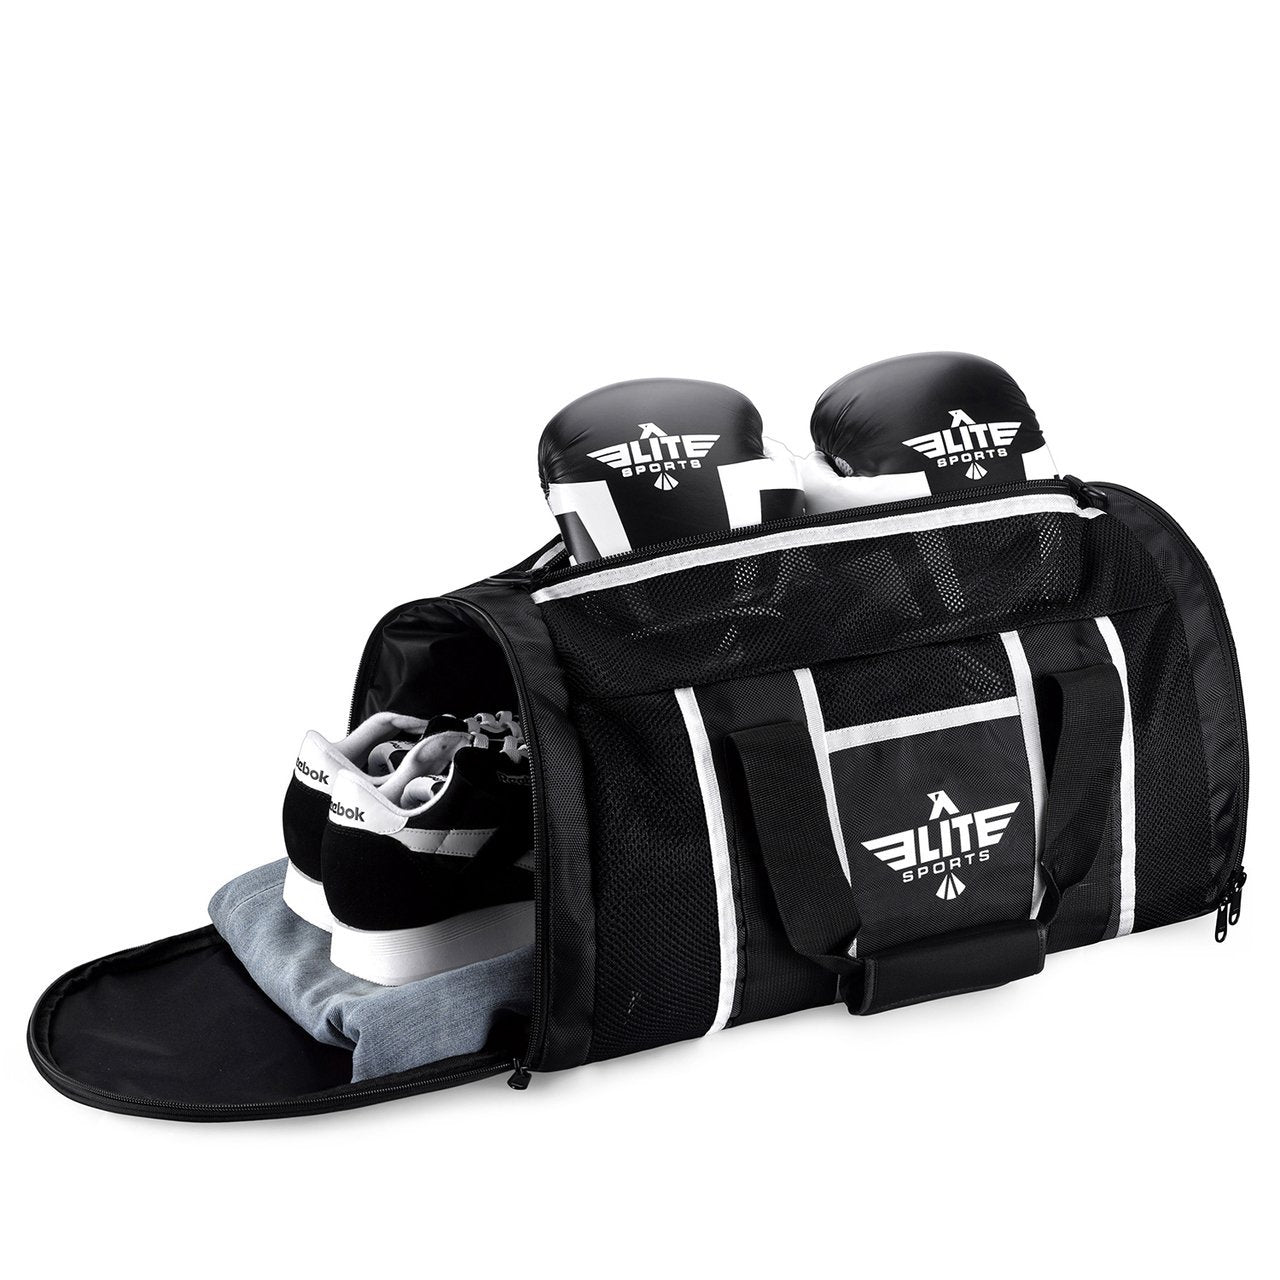 Load image into Gallery viewer, Elite Sports Mesh Black Large Karate Gear Gym Bag